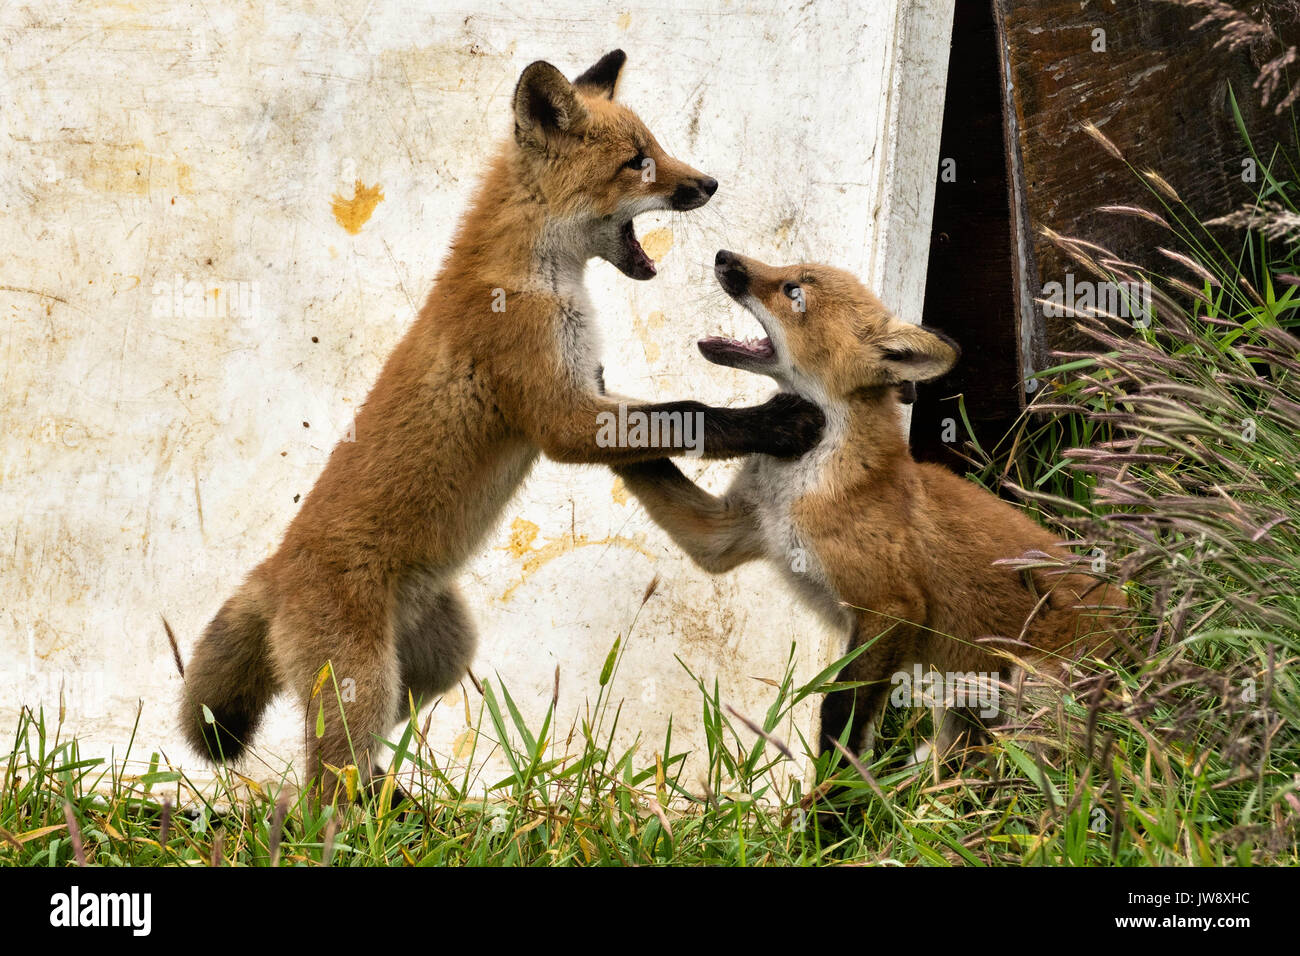 A red fox kits play at the McNeil River State Game Sanctuary on the Kenai Peninsula, Alaska. The remote site is accessed only with a special permit and is the world's largest seasonal population of brown bears in their natural environment. - Stock Image